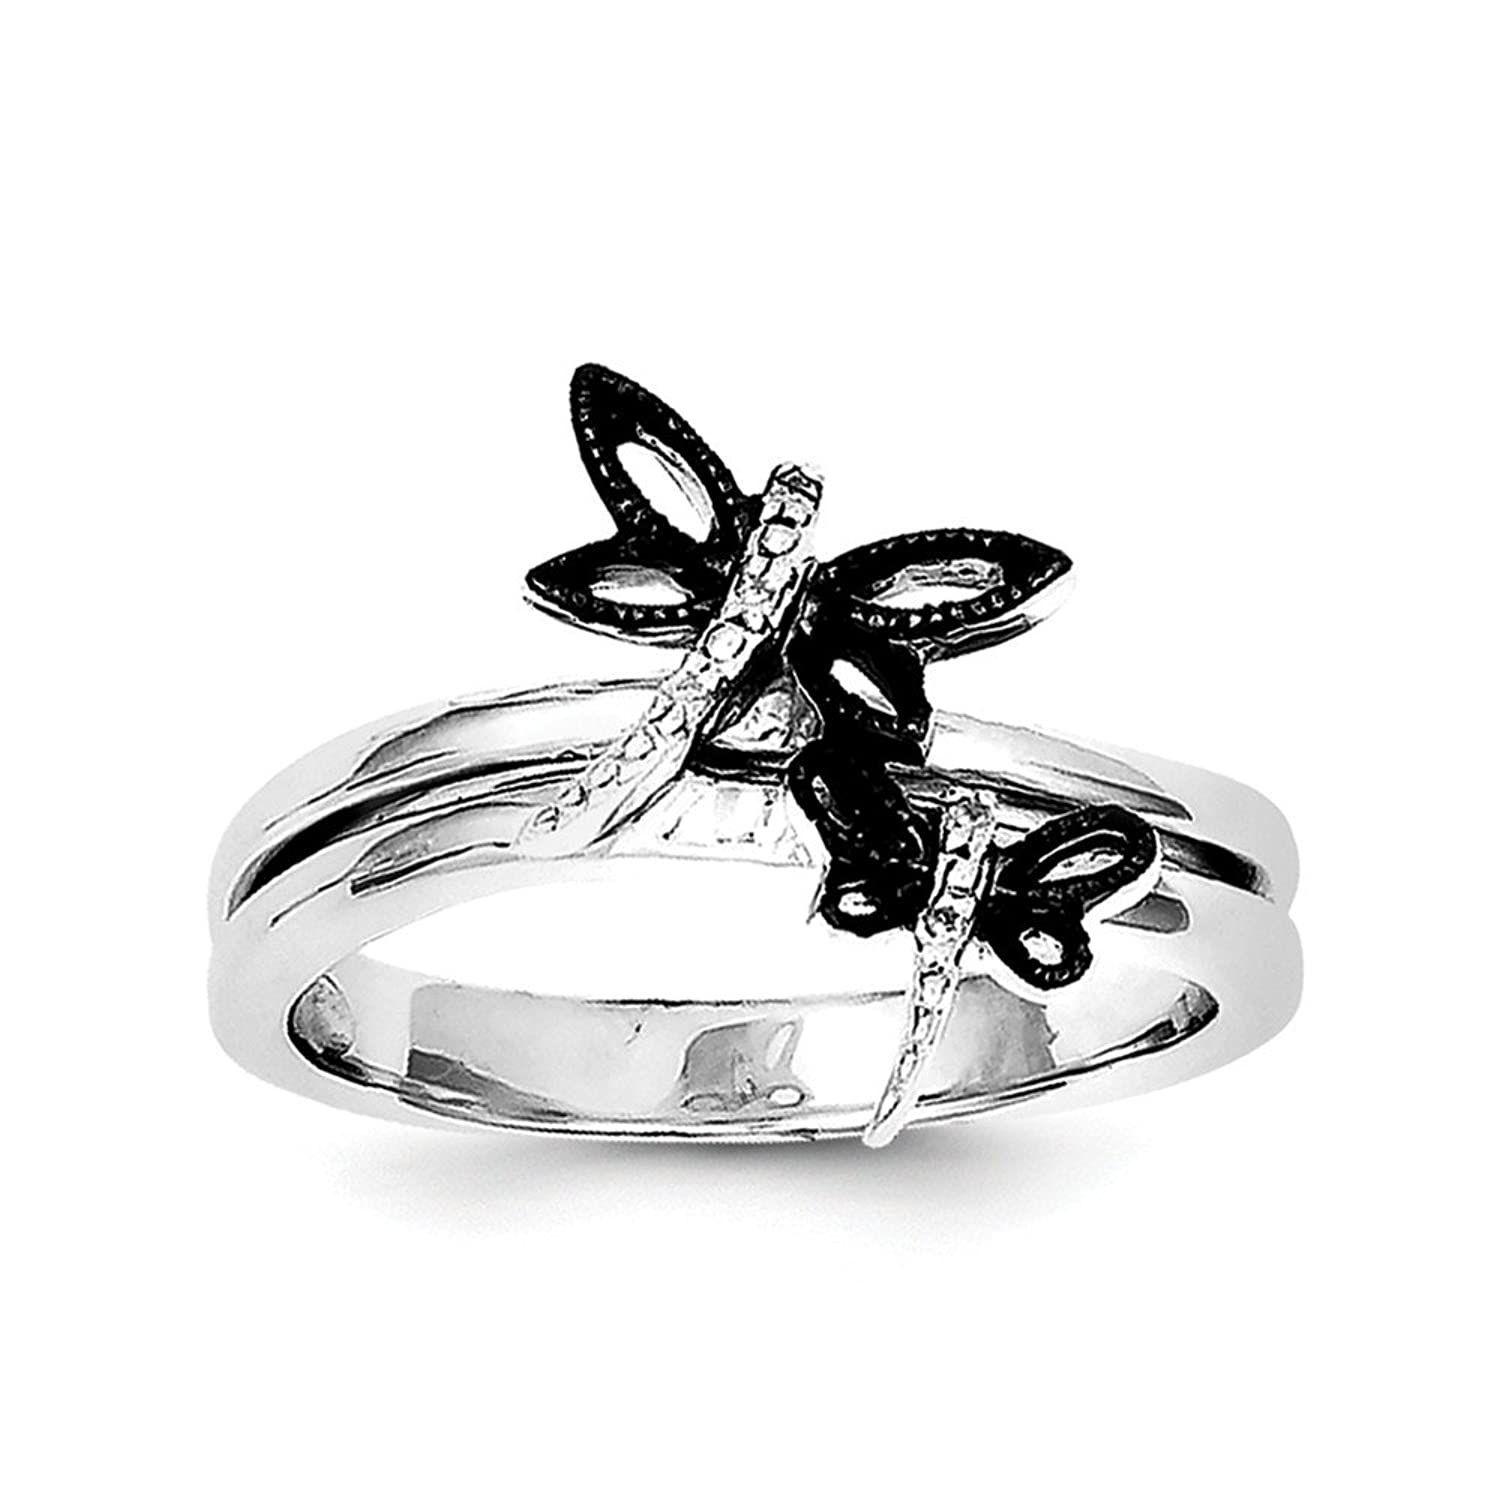 false ring scale dragonfly rings upscale engagement de big beers images diamond subsampling crop